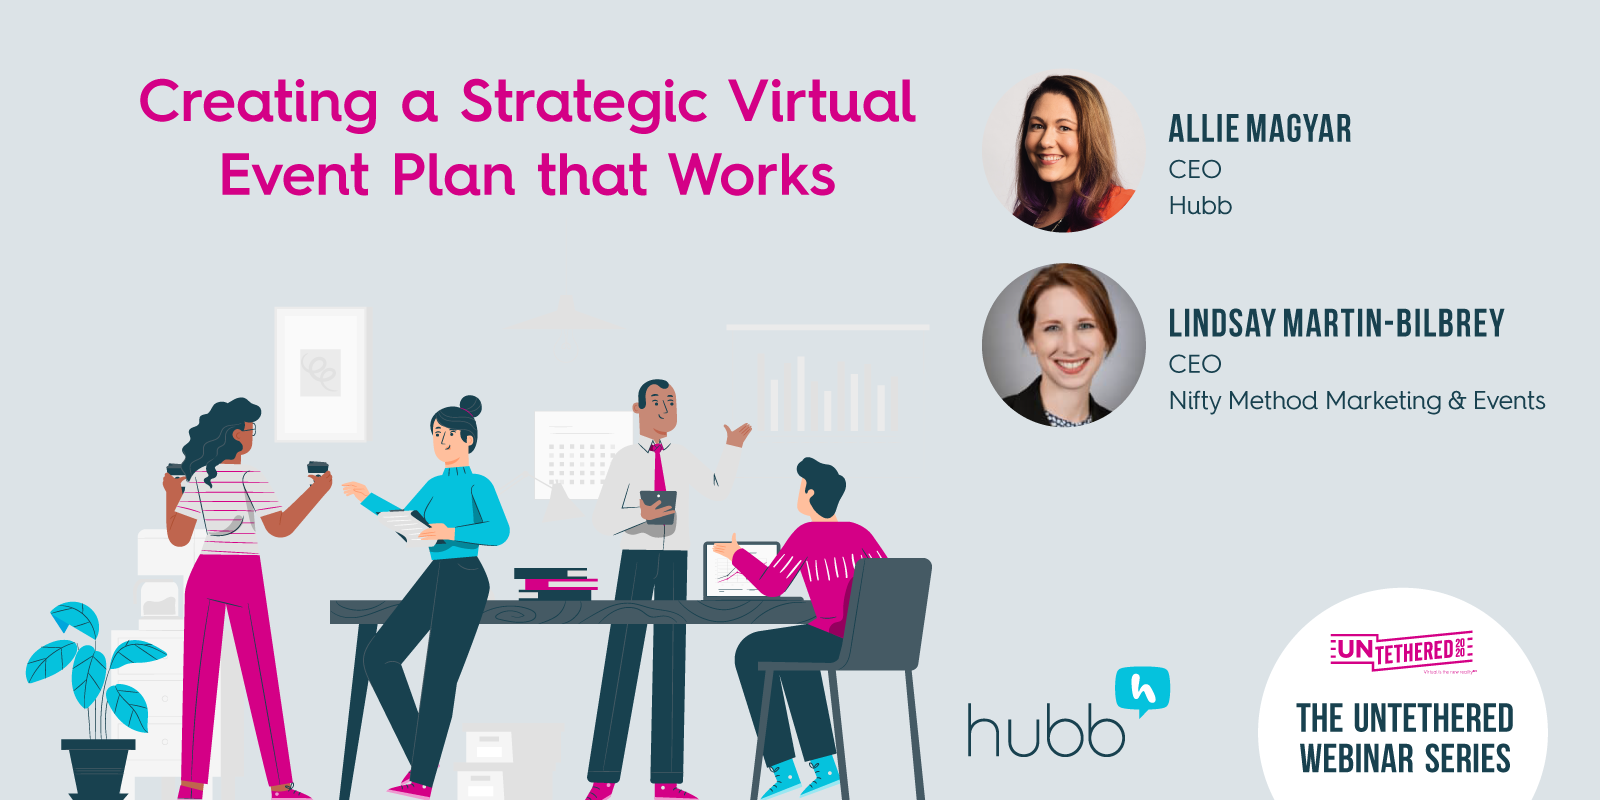 Creating a Strategic Virtual Event Plan that Works Webinar